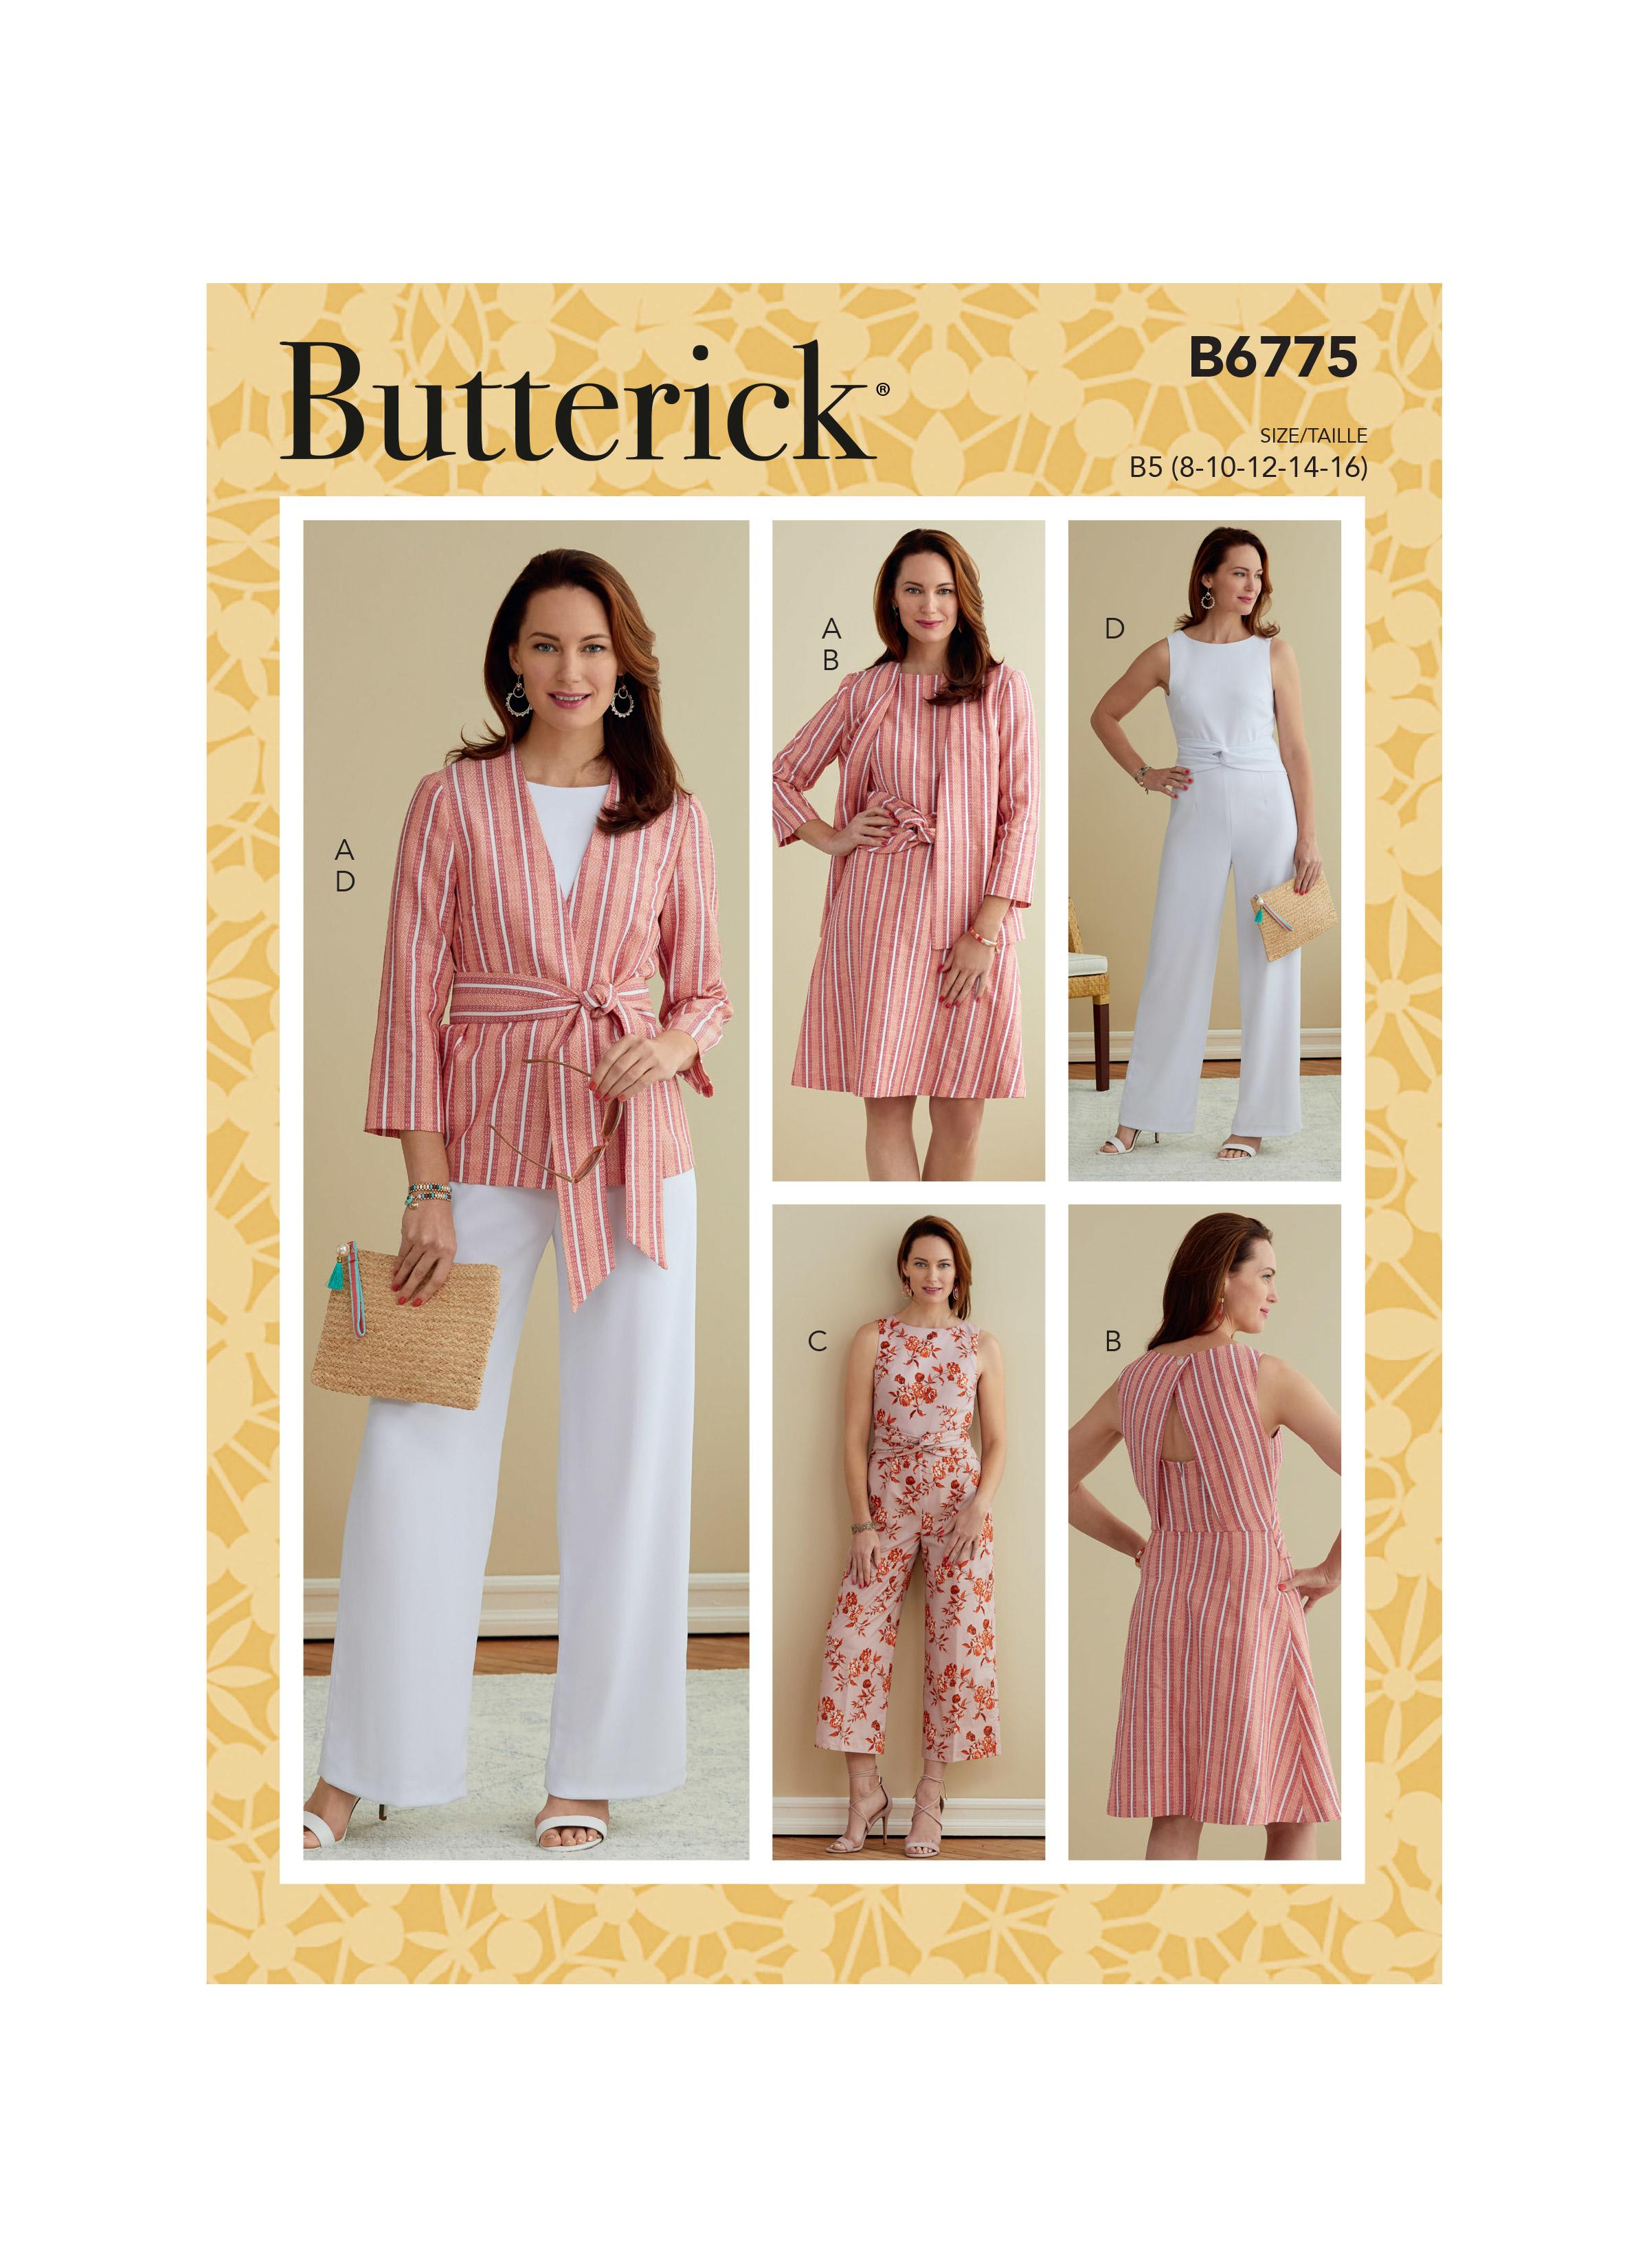 Butterick B6775 Misses' & Women's Jacket, Sash, Dress and Jumpsuits